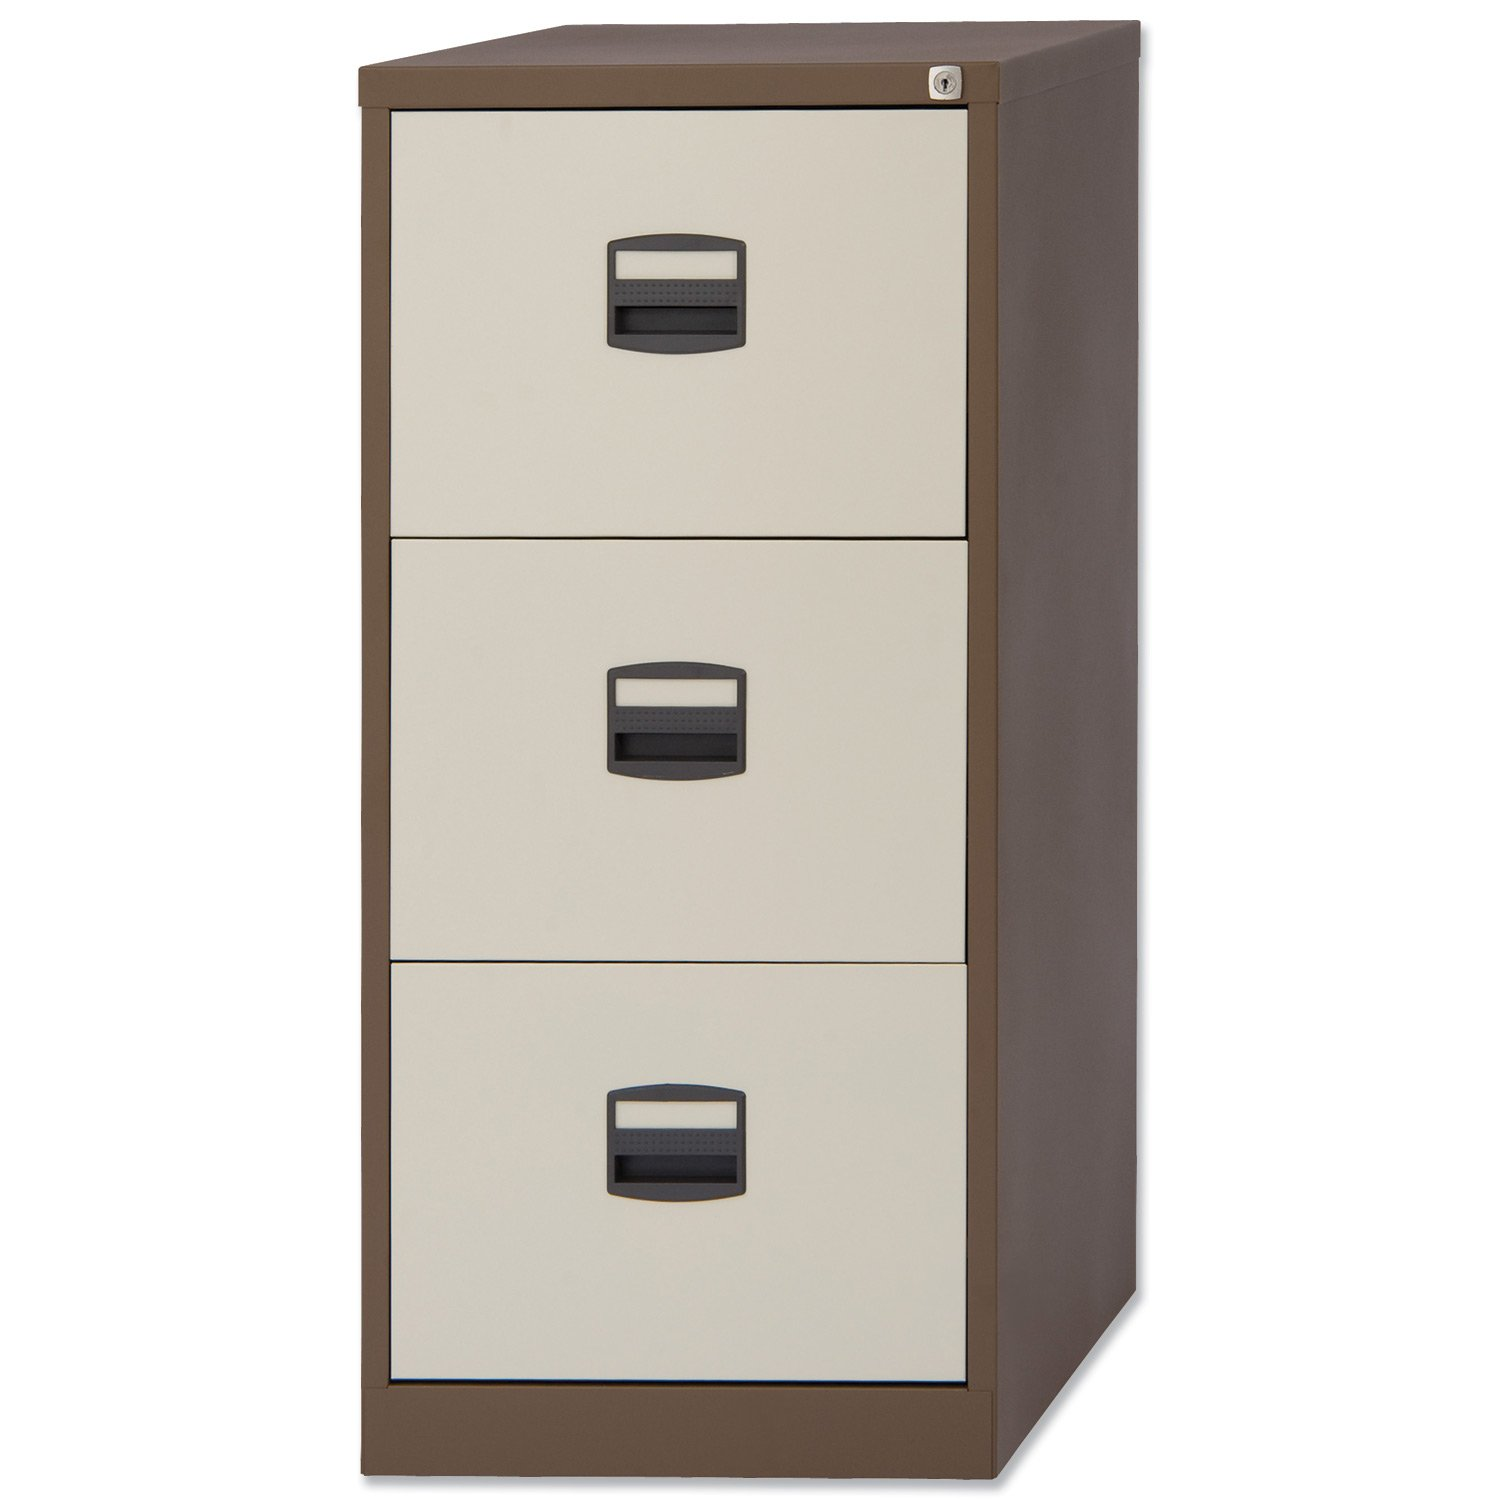 Trexus Filing Cabinet Steel Lockable 3 Drawer W470xD622xH1016mm Brown And  Cream: Amazon.co.uk: Kitchen U0026 Home